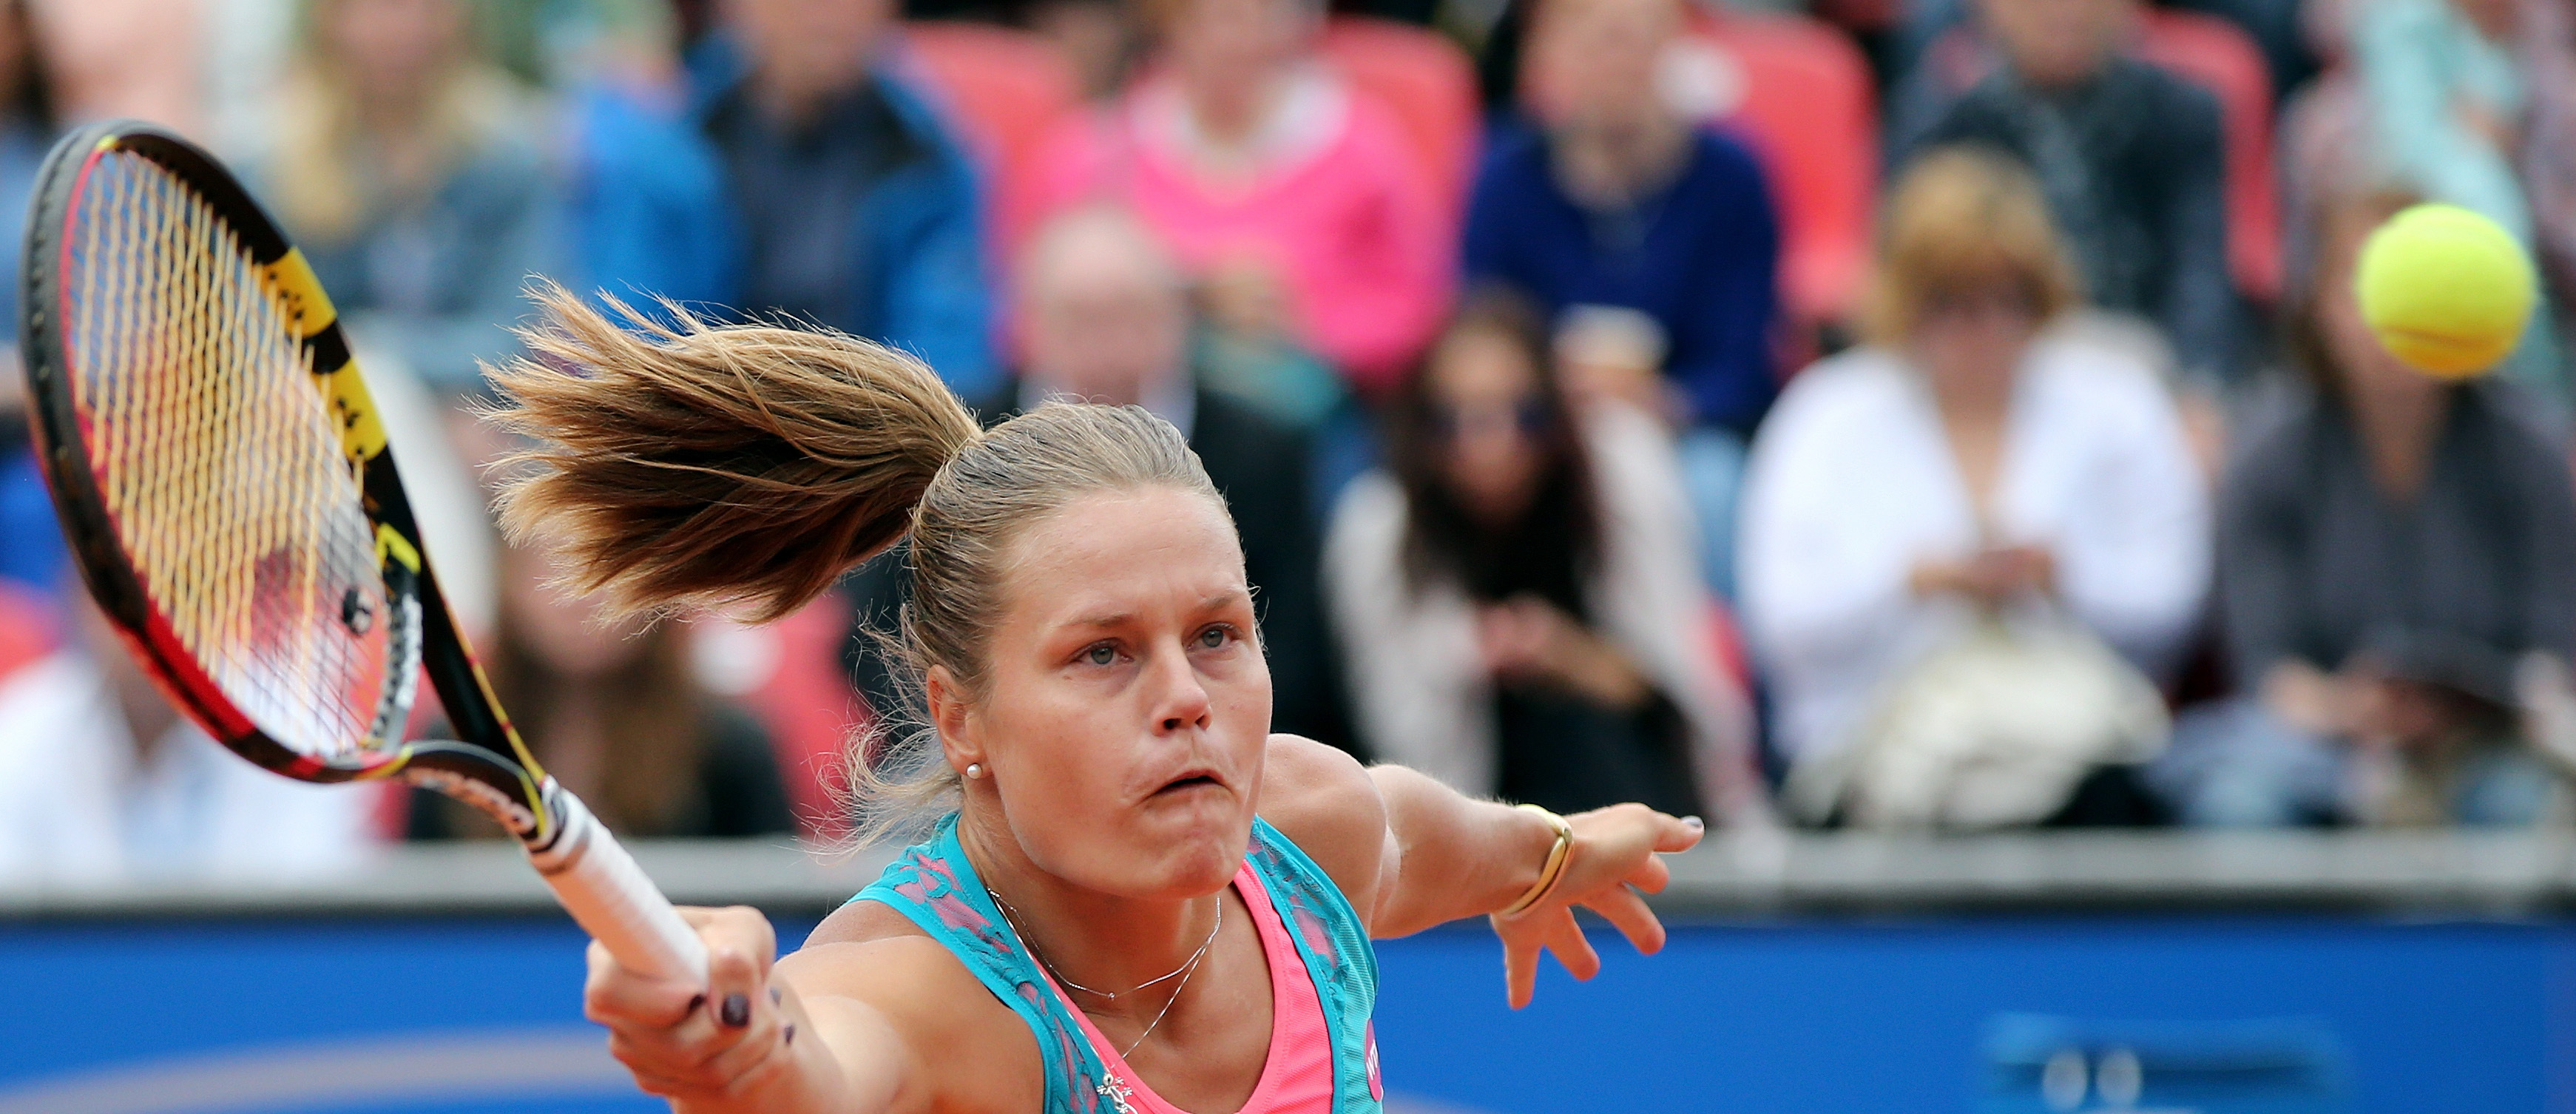 Karin Knapp  from Italy returns a ball to Italy's Roberta Vinci during the final of the Nuremberg  Cup tennis tournament in Nuremberg, Germany, Saturday May 23, 2015.   ( Daniel Karmann/dpa, via AP)